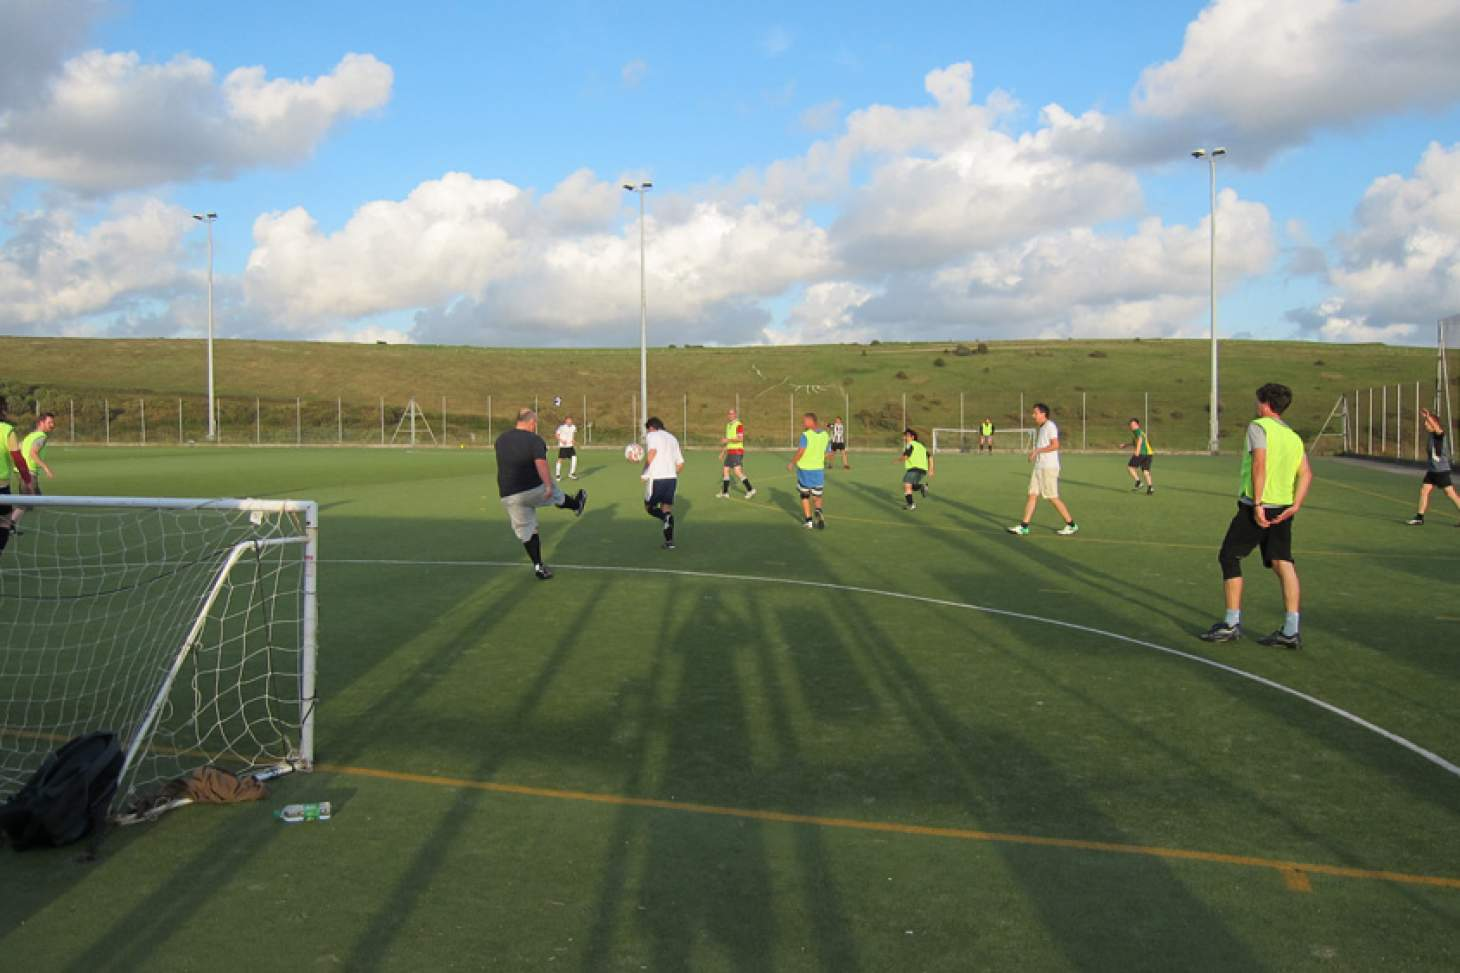 Stanley Deason Leisure Centre Outdoor | Astroturf hockey pitch